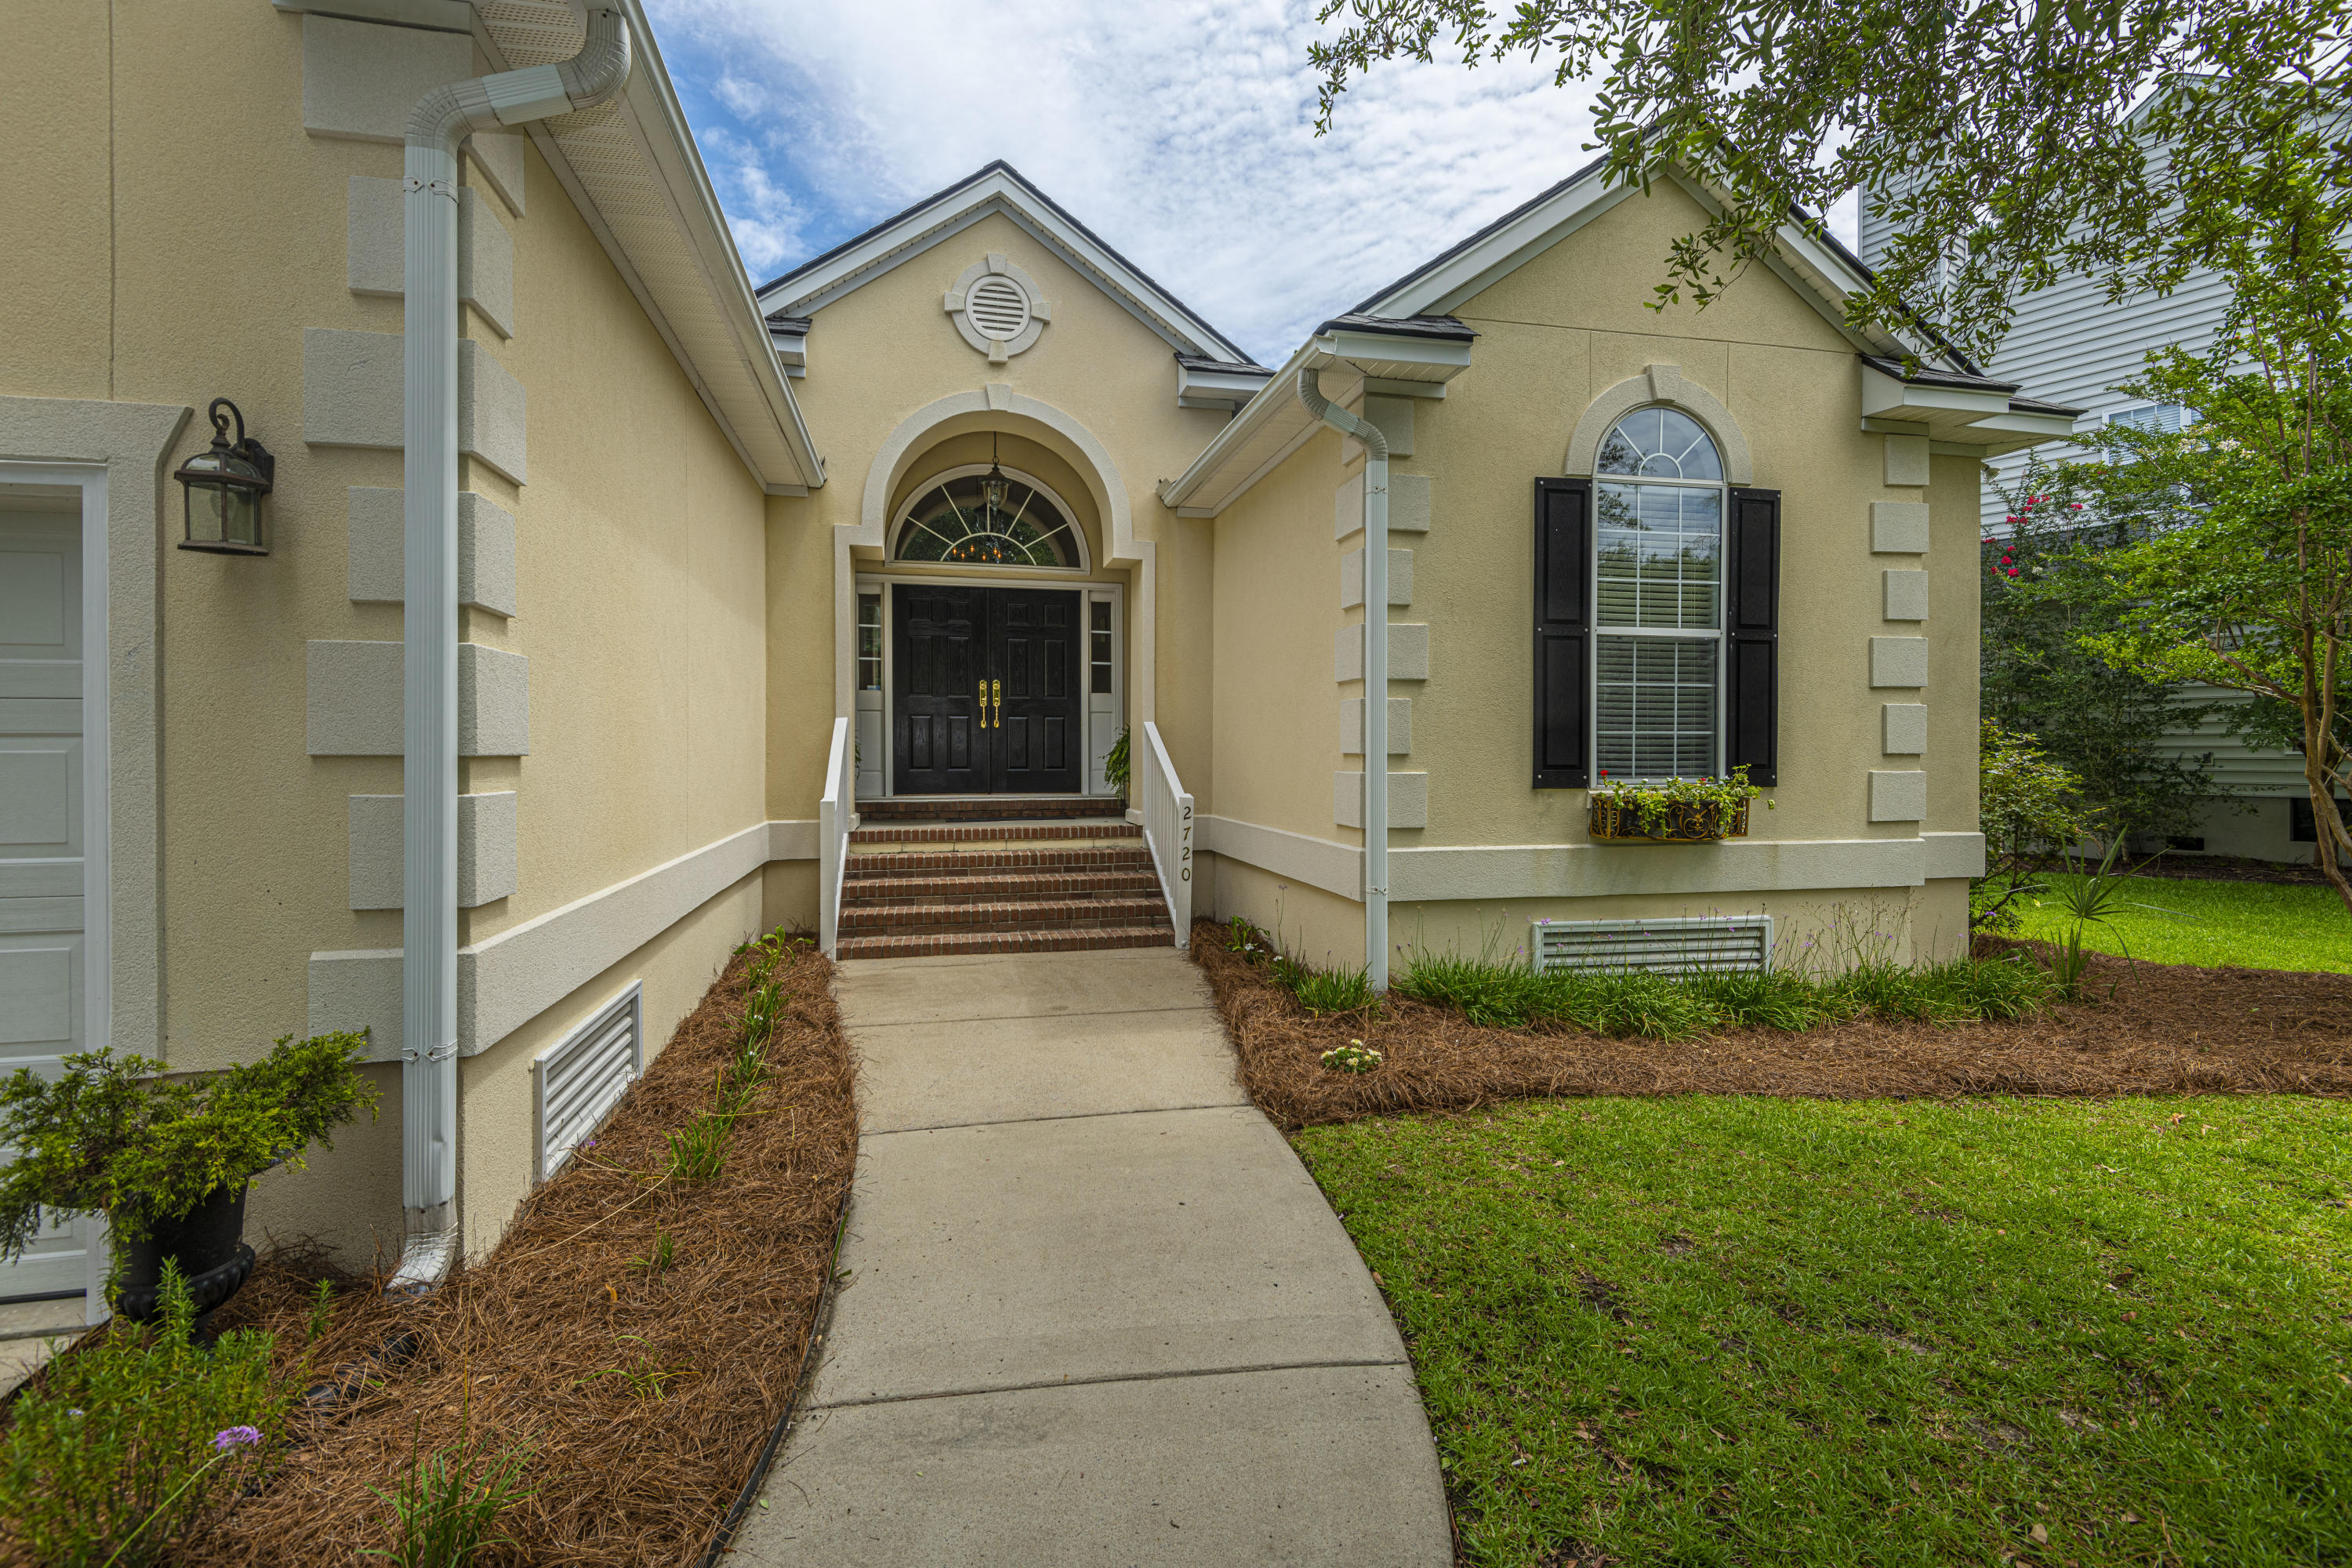 Rivertowne Country Club Homes For Sale - 2720 Sarazen, Mount Pleasant, SC - 0